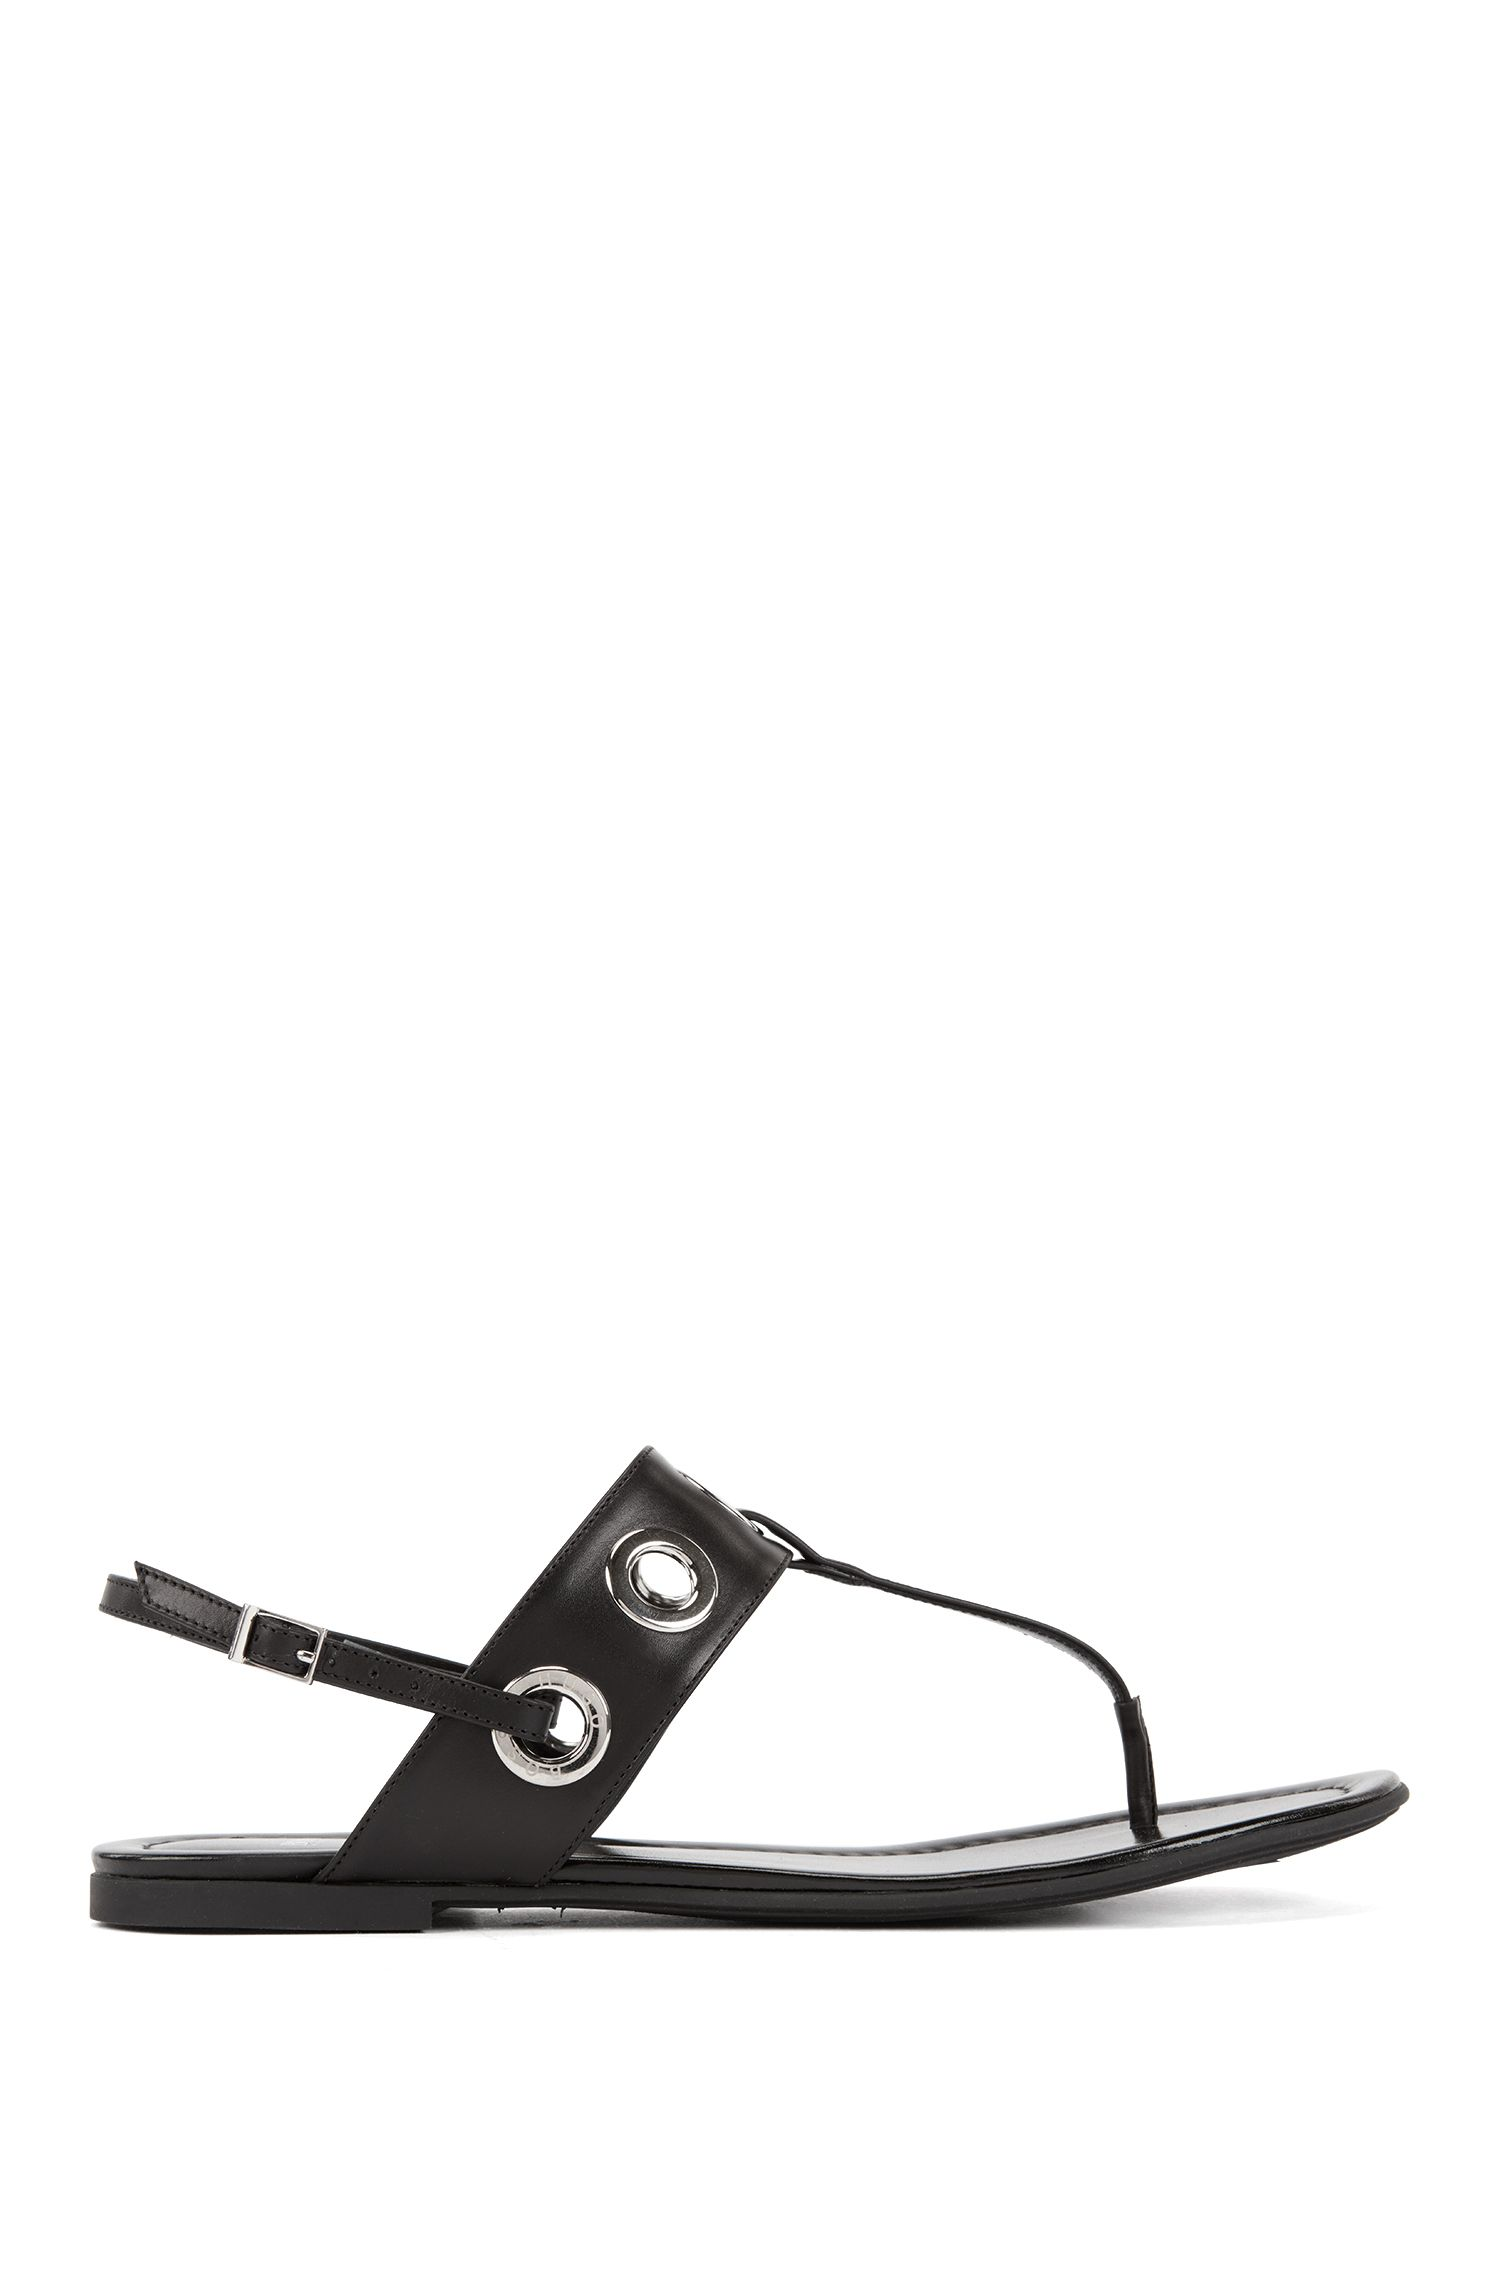 Leather T-bar sandals with removable ankle straps, Black